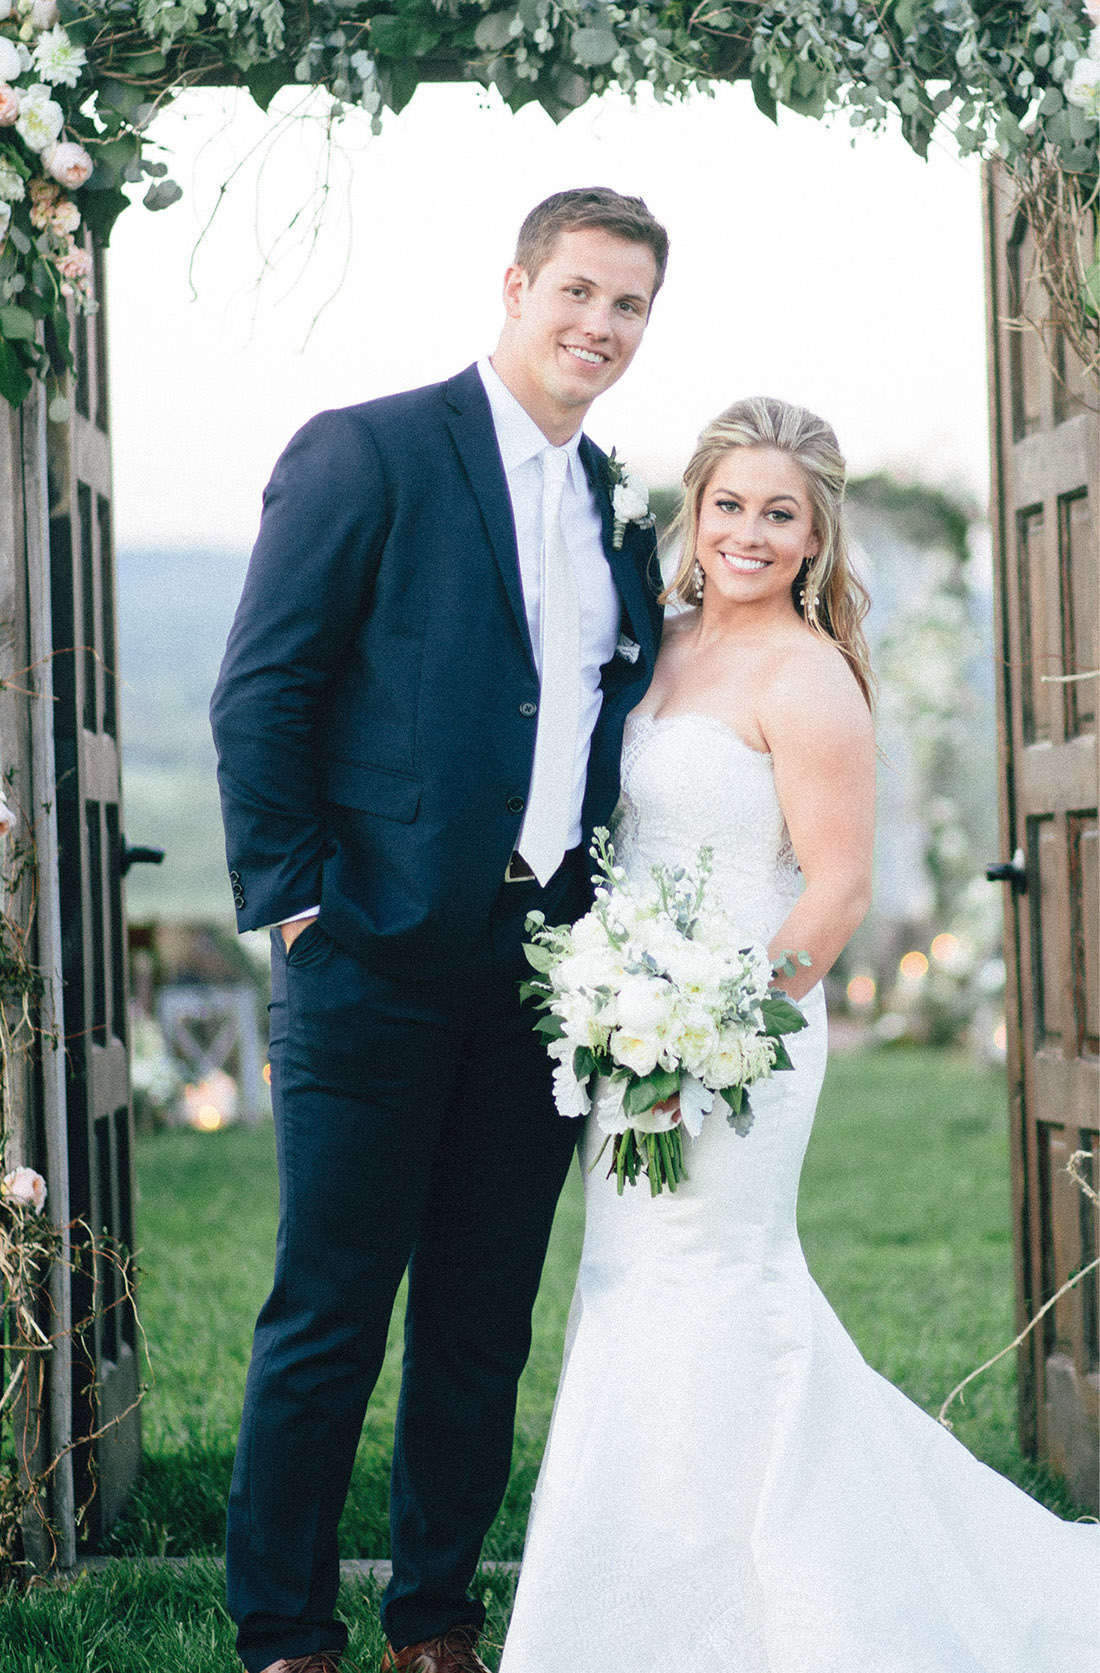 Shawn Johnson Wedding.Celebrity Wedding Andrew East And Shawn Johnson Tie The Knot